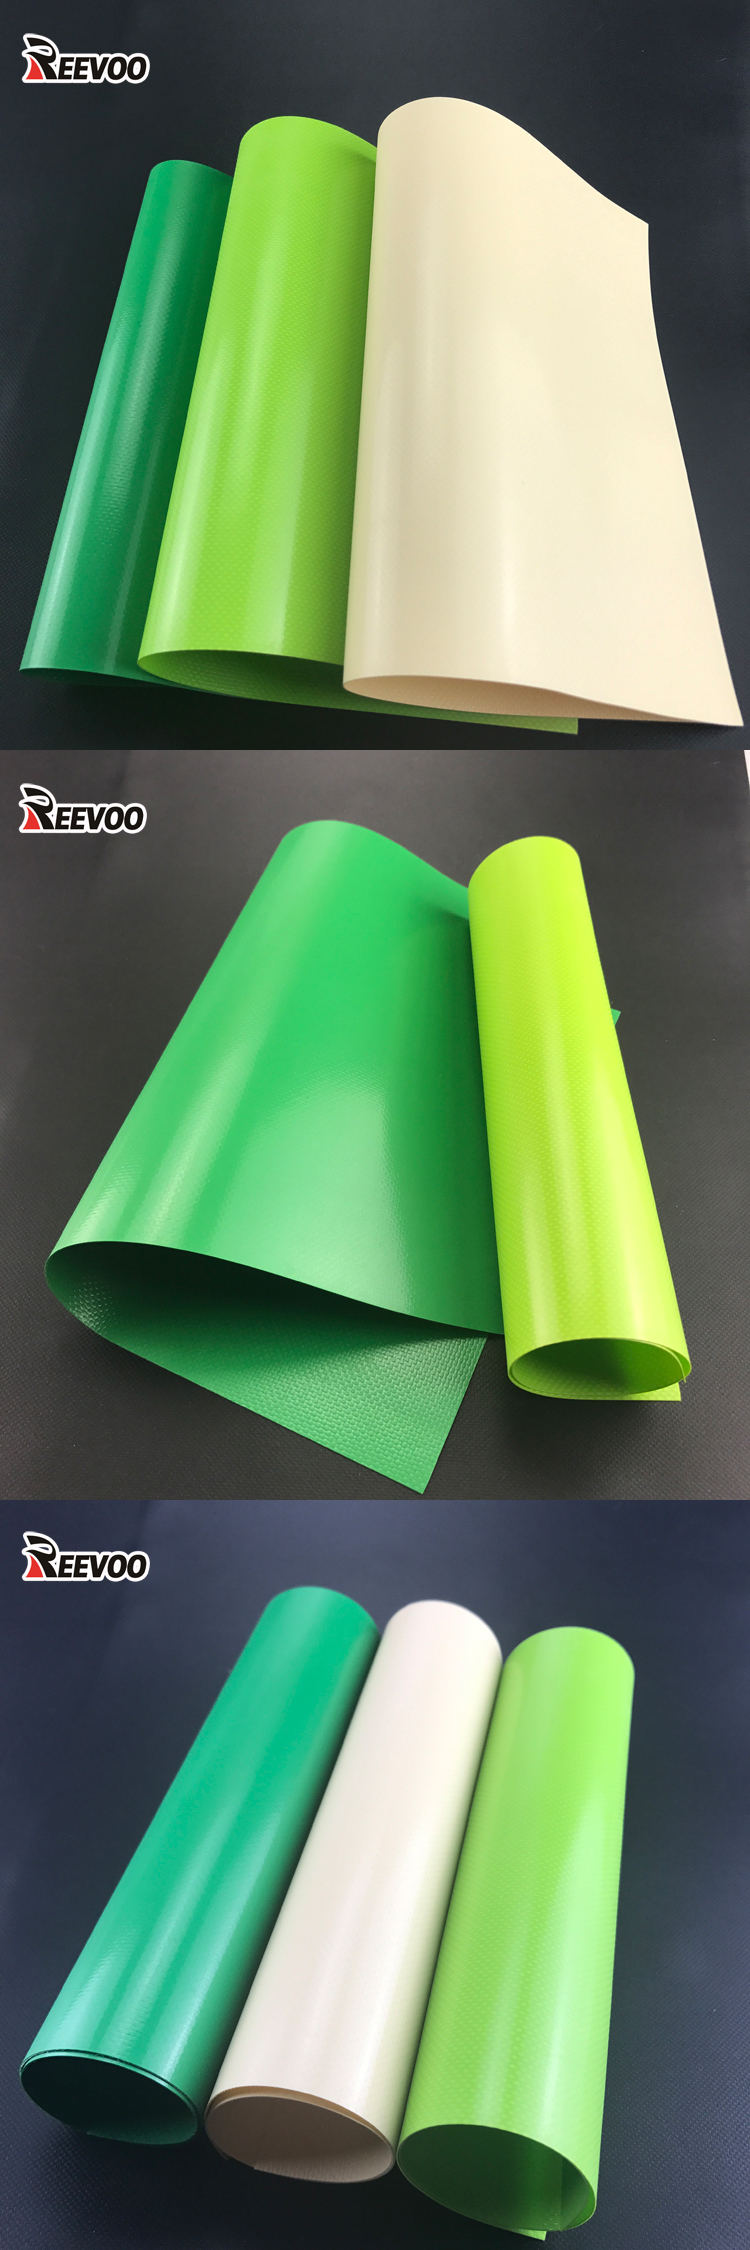 China factory waterproof pvc coated tarpaulin fabric, pvc tarpaulin